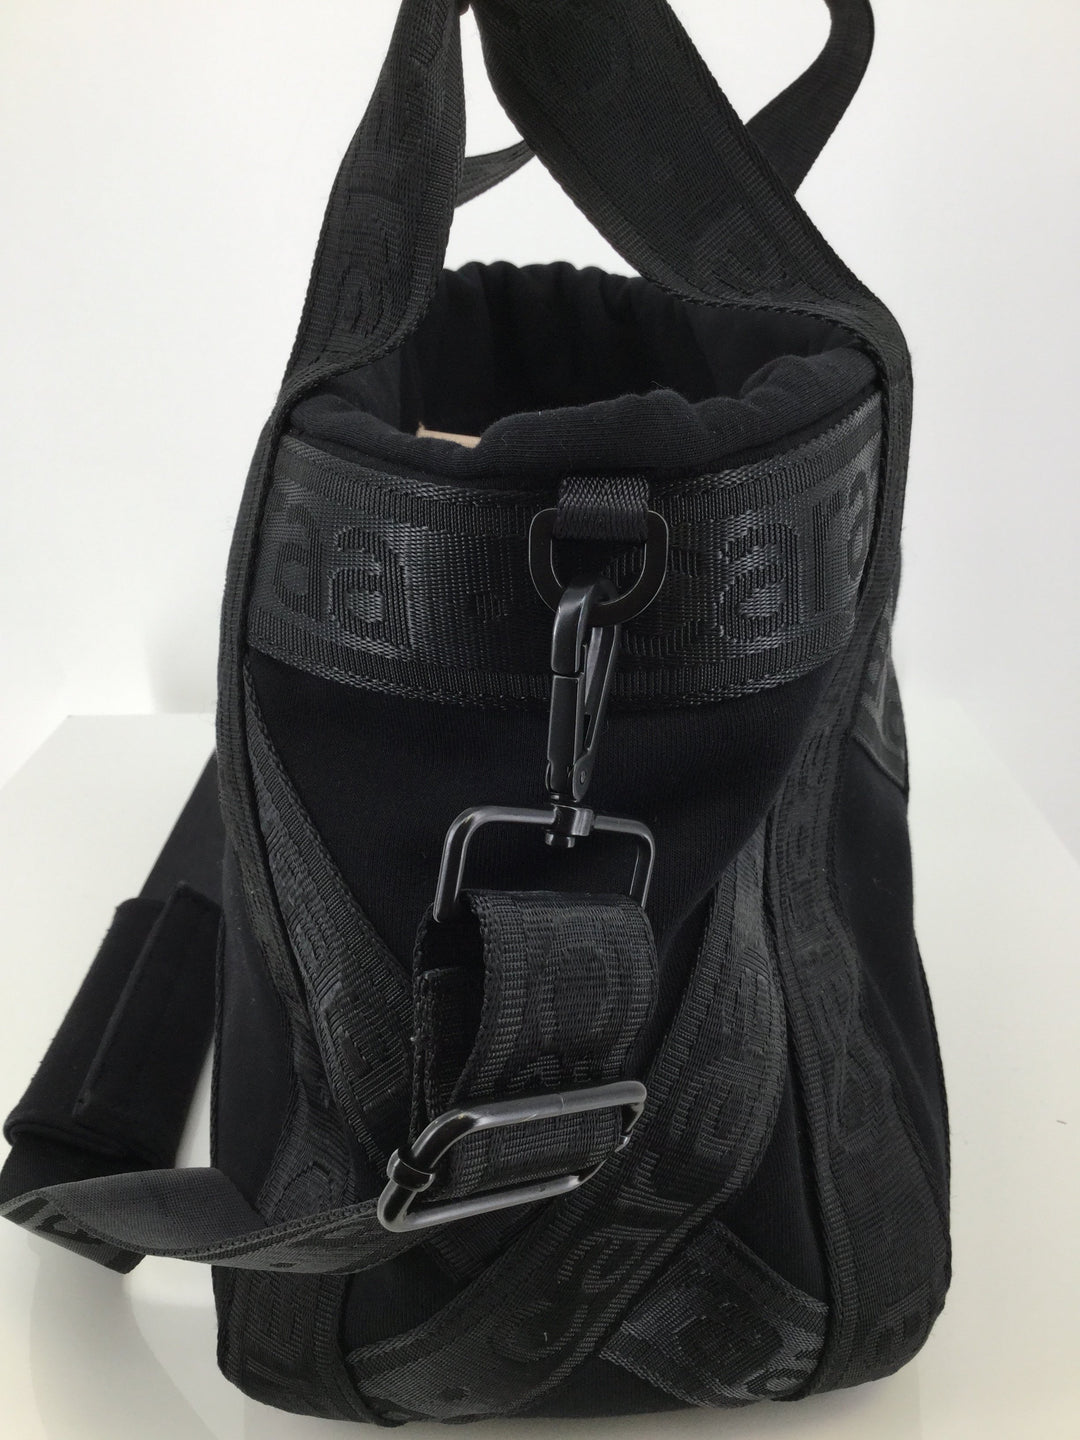 Caraa Sport Crossbody Handbag, Black, Size Large - <P>GOING TO THE GYM AND NEED A GREAT BAG? WE HAVE THE PERFECT ONE FOR YOU! THIS CAN BE WORN AS A CROSSBODY OR A HANDBAG. HAS A DRAWSTRING TO OPEN/CLOSE THE BAG. PLENTY OF SPACE ON THE INSIDE FOR ALL YOUR GYM GEAR. GENTLY WORN, (SEE PHOTOS).</P>